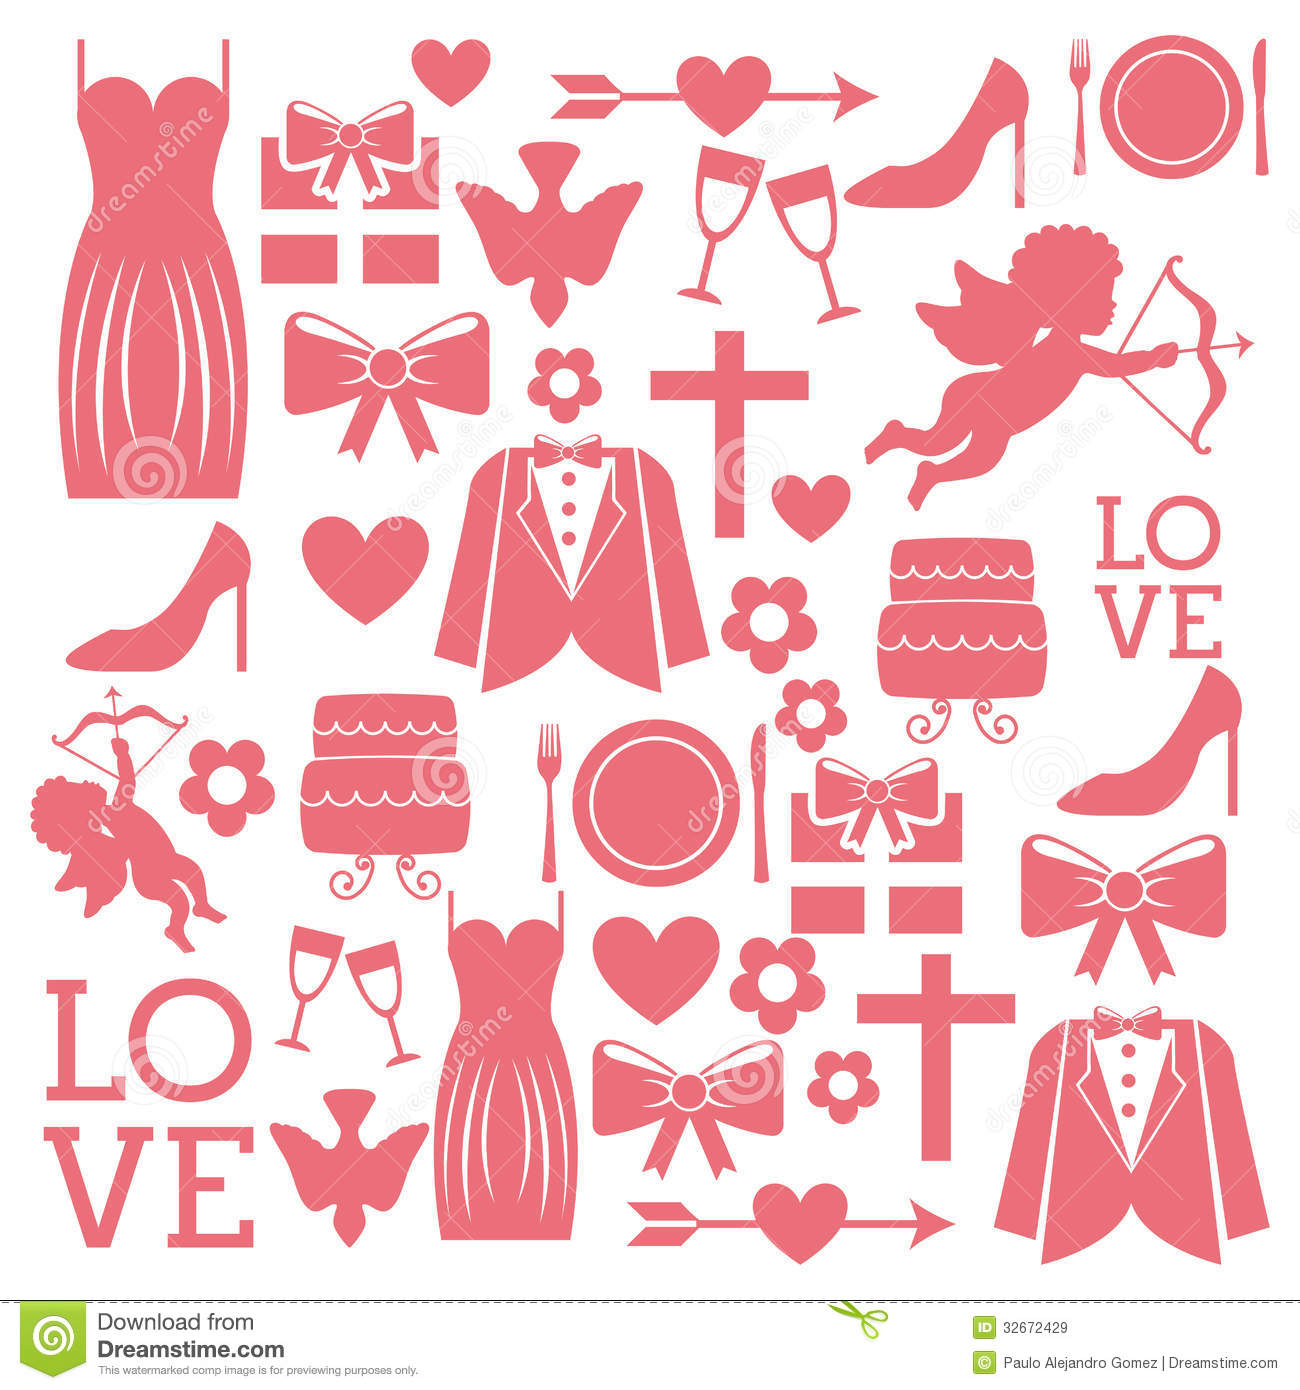 Wedding Icons Royalty Free Stock Images - Image: 32672429: www.dreamstime.com/royalty-free-stock-images-wedding-icons-over...